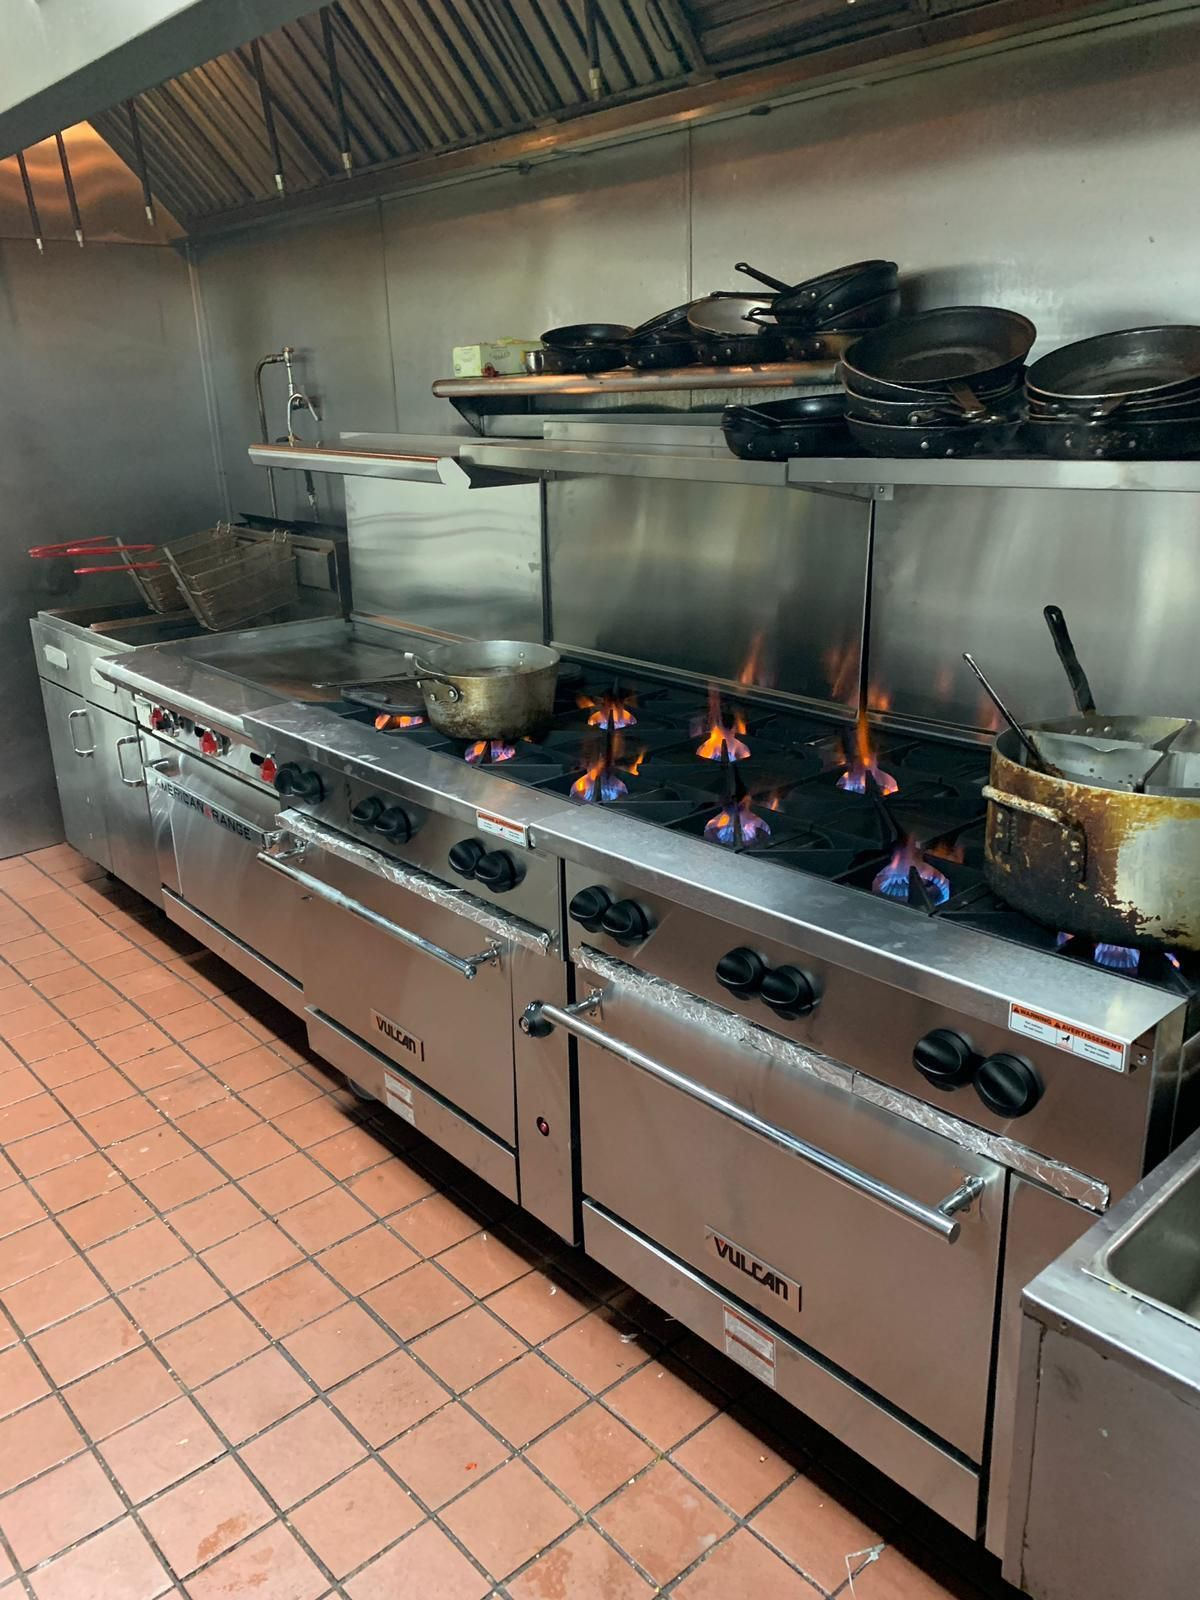 vulcan kitchen remodel budget have a lot of cooking to do get it all done with commercial range culinarydepot restaurantrange flame multitask commercialkitchen